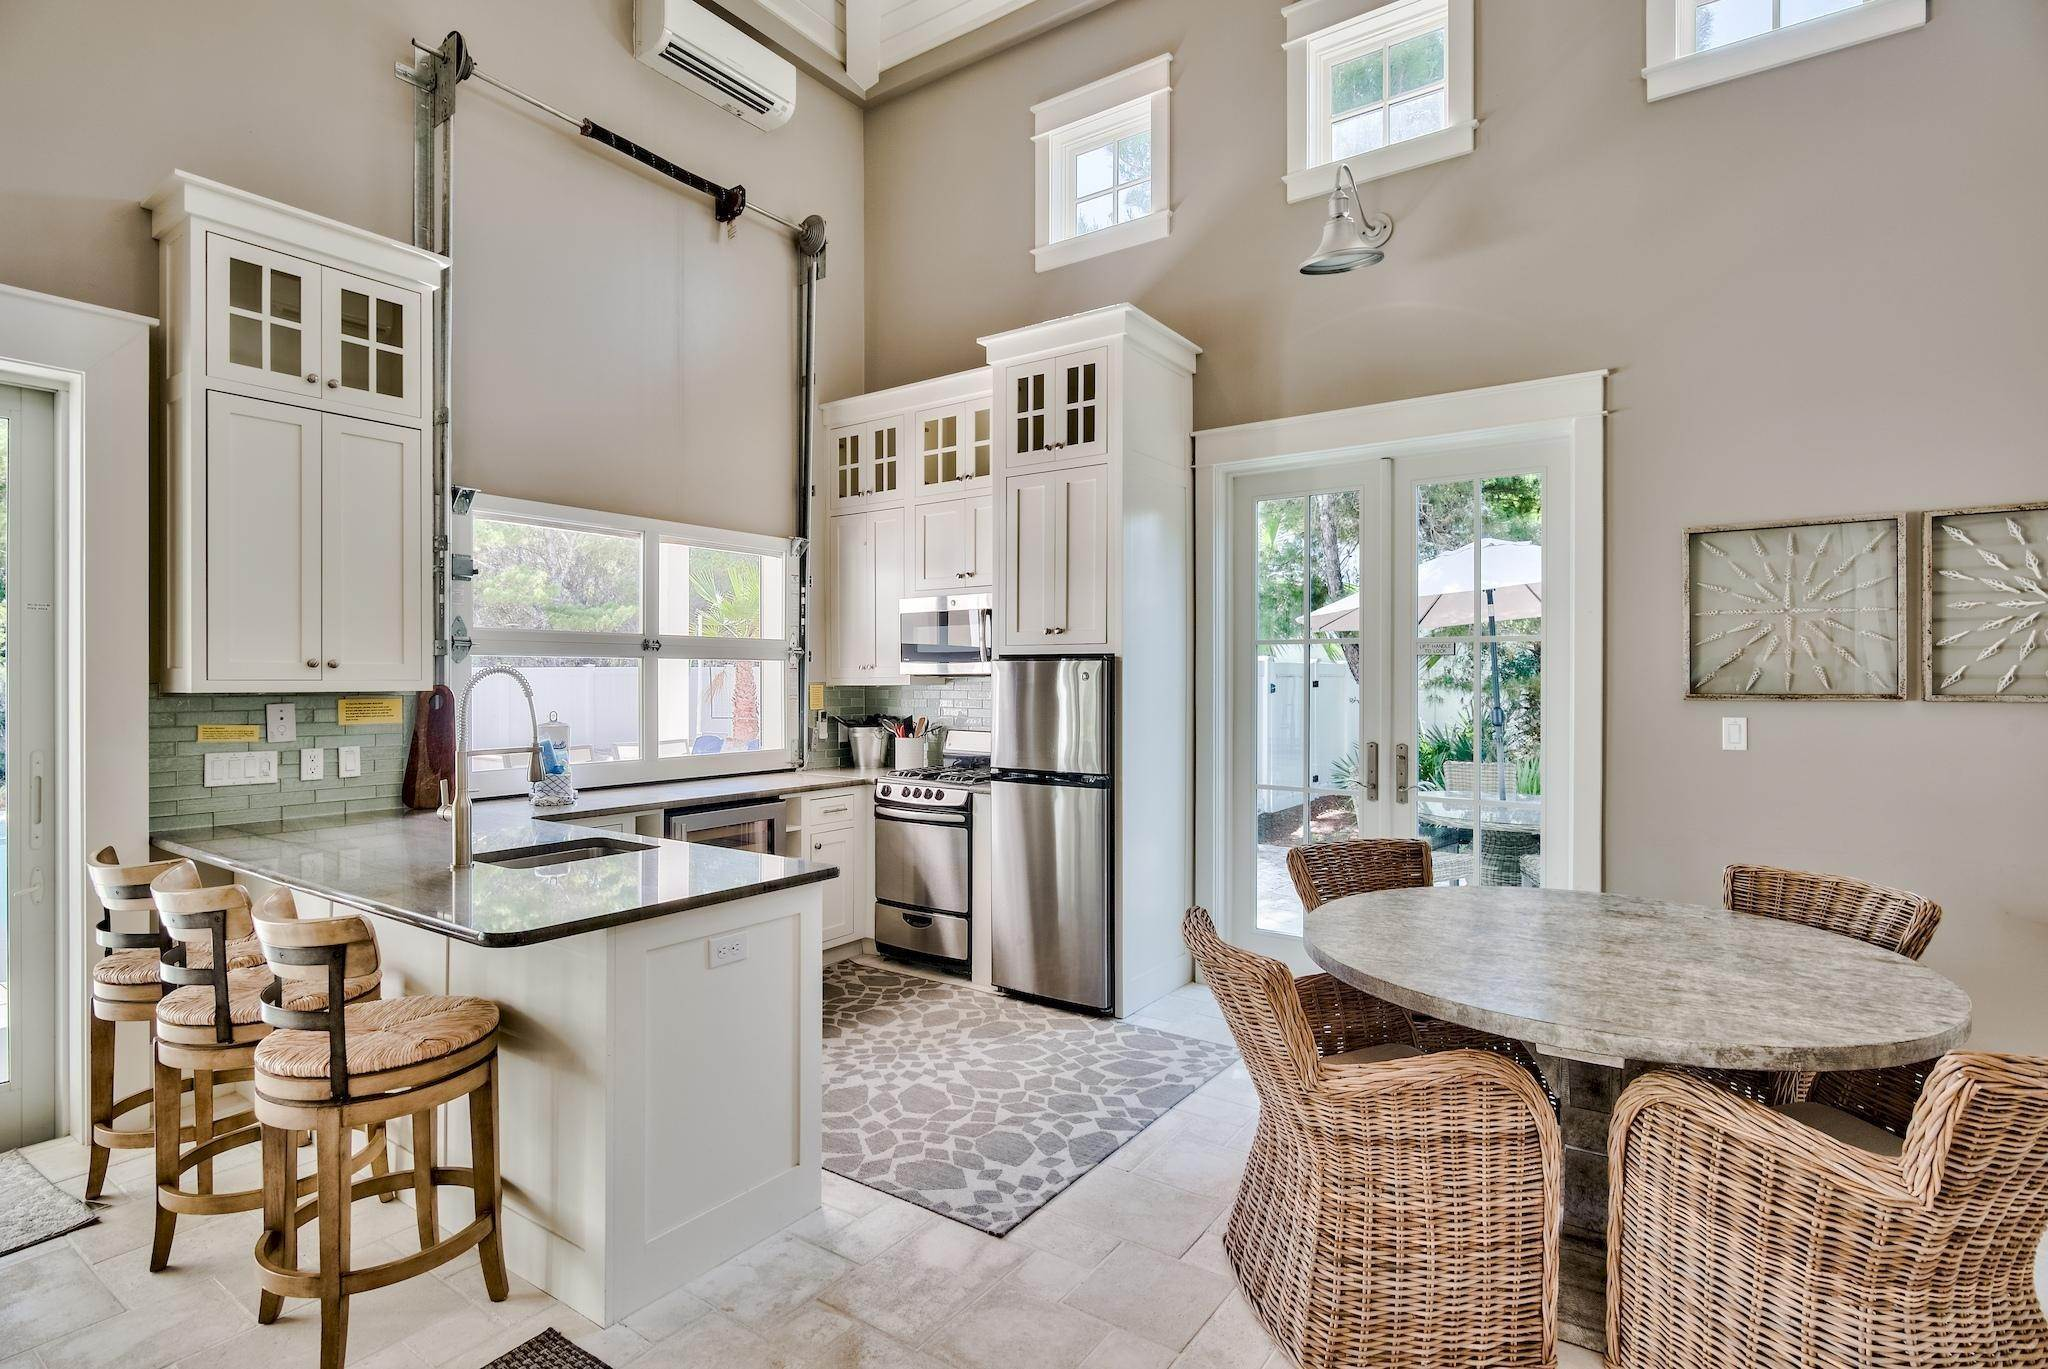 37. Single Family Home for Sale at 325 Walton Rose Lane Inlet Beach, Florida,32461 United States